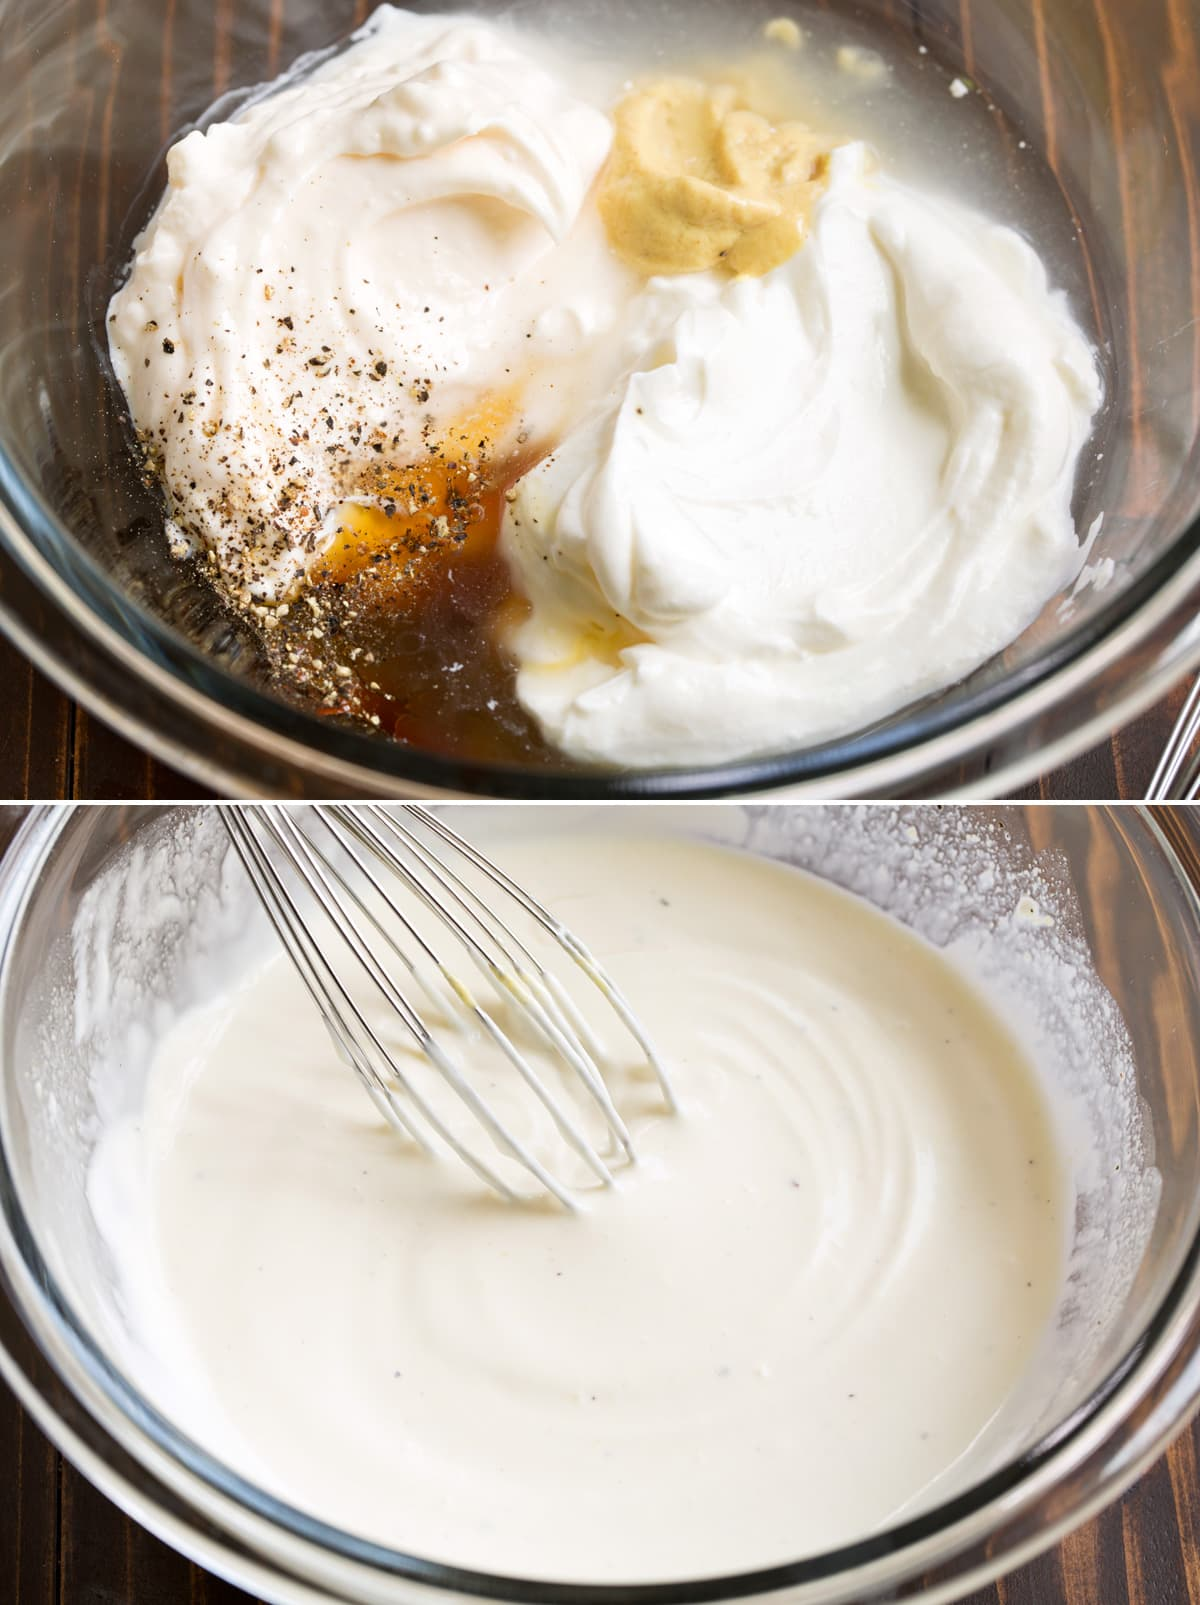 Collage image of macaroni salad dressing in a mixing bowl shown before and after mixing.